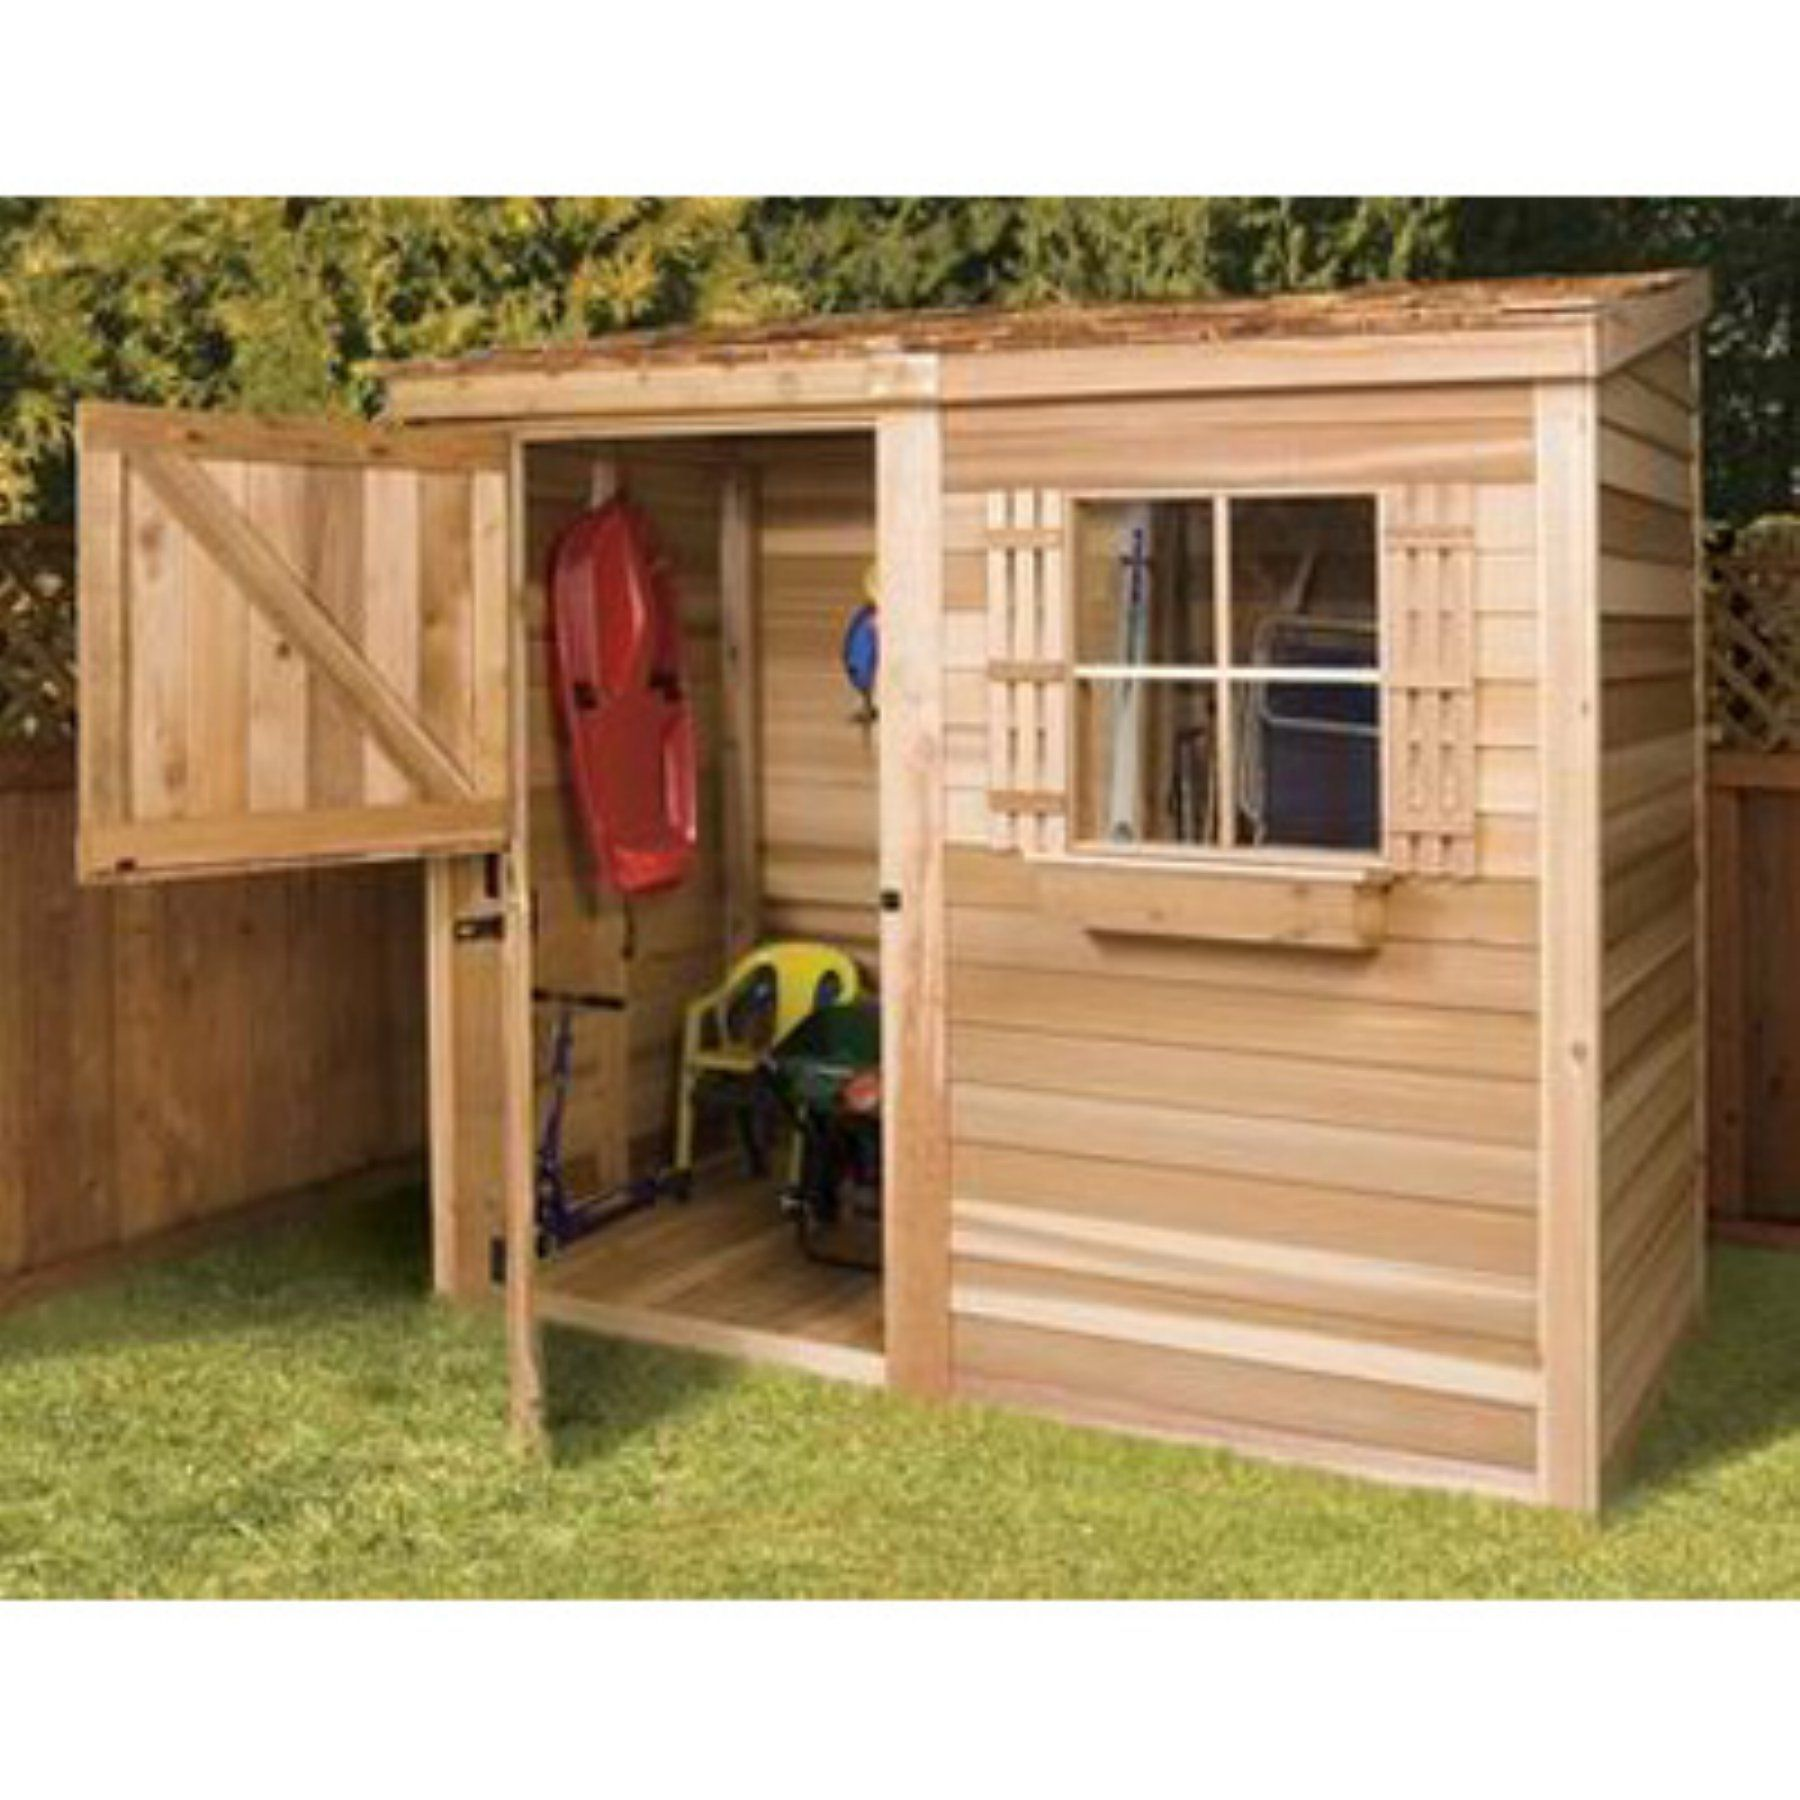 Diy Sheds For Sale: Cedar Shed 8 X 4 Ft. Bayside Wood Storage Shed